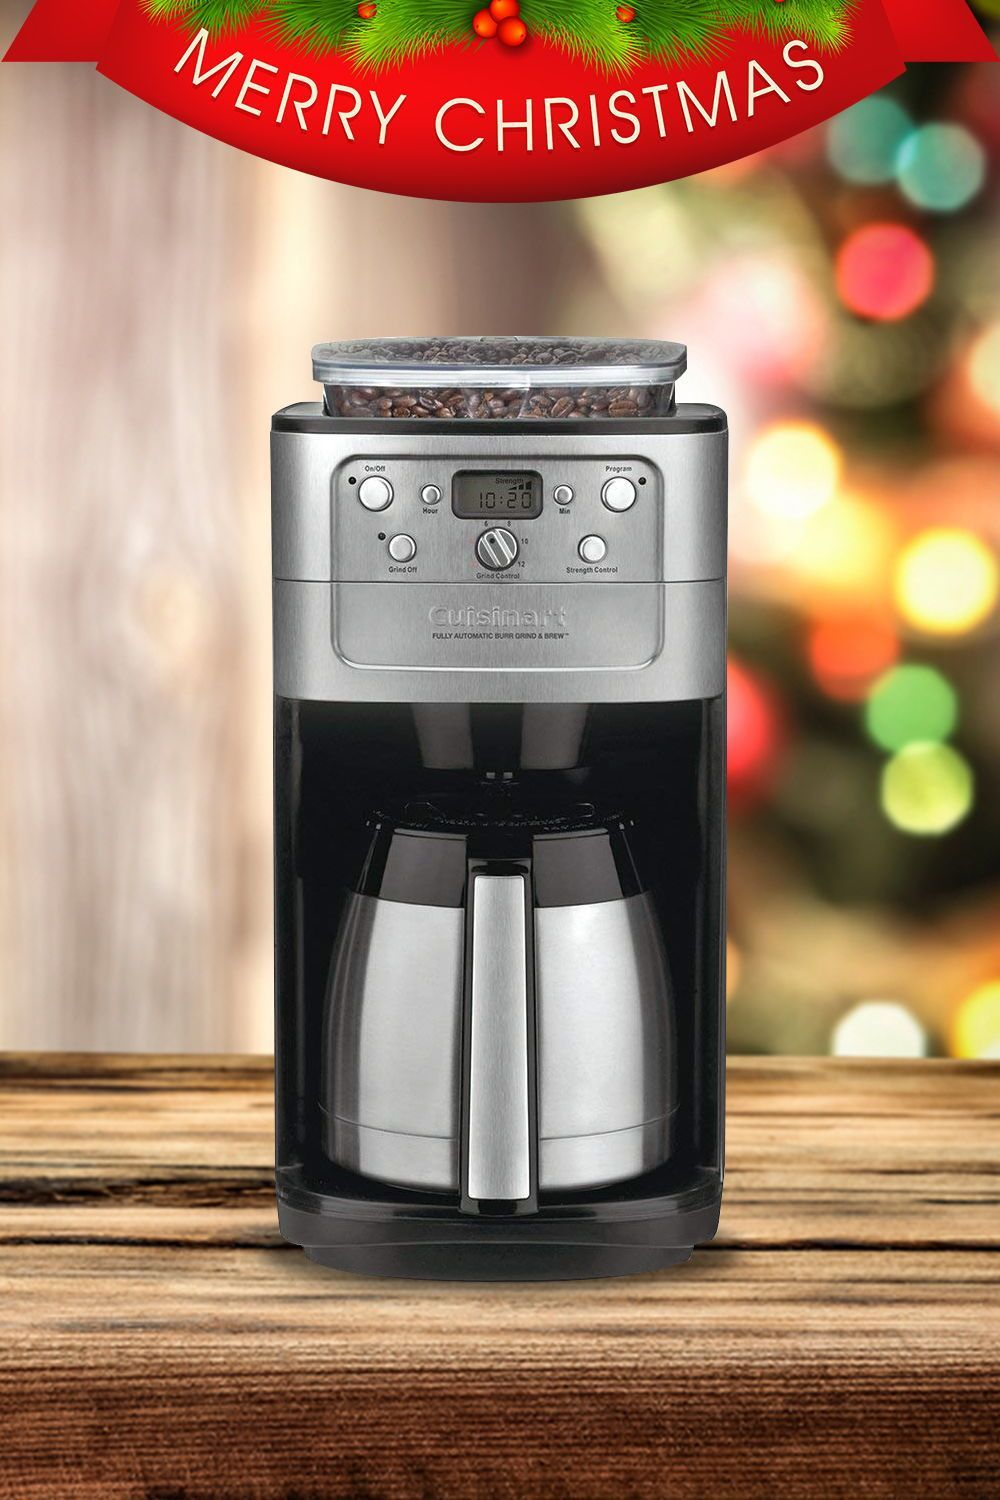 Cuisinart Dcc 3200 14 Cup Cuisinart Drip Coffee Makers Drip Coffee Makers Mr Coffee 4 Cup Be Coffee Maker Coffee And Espresso Maker Best Drip Coffee Maker